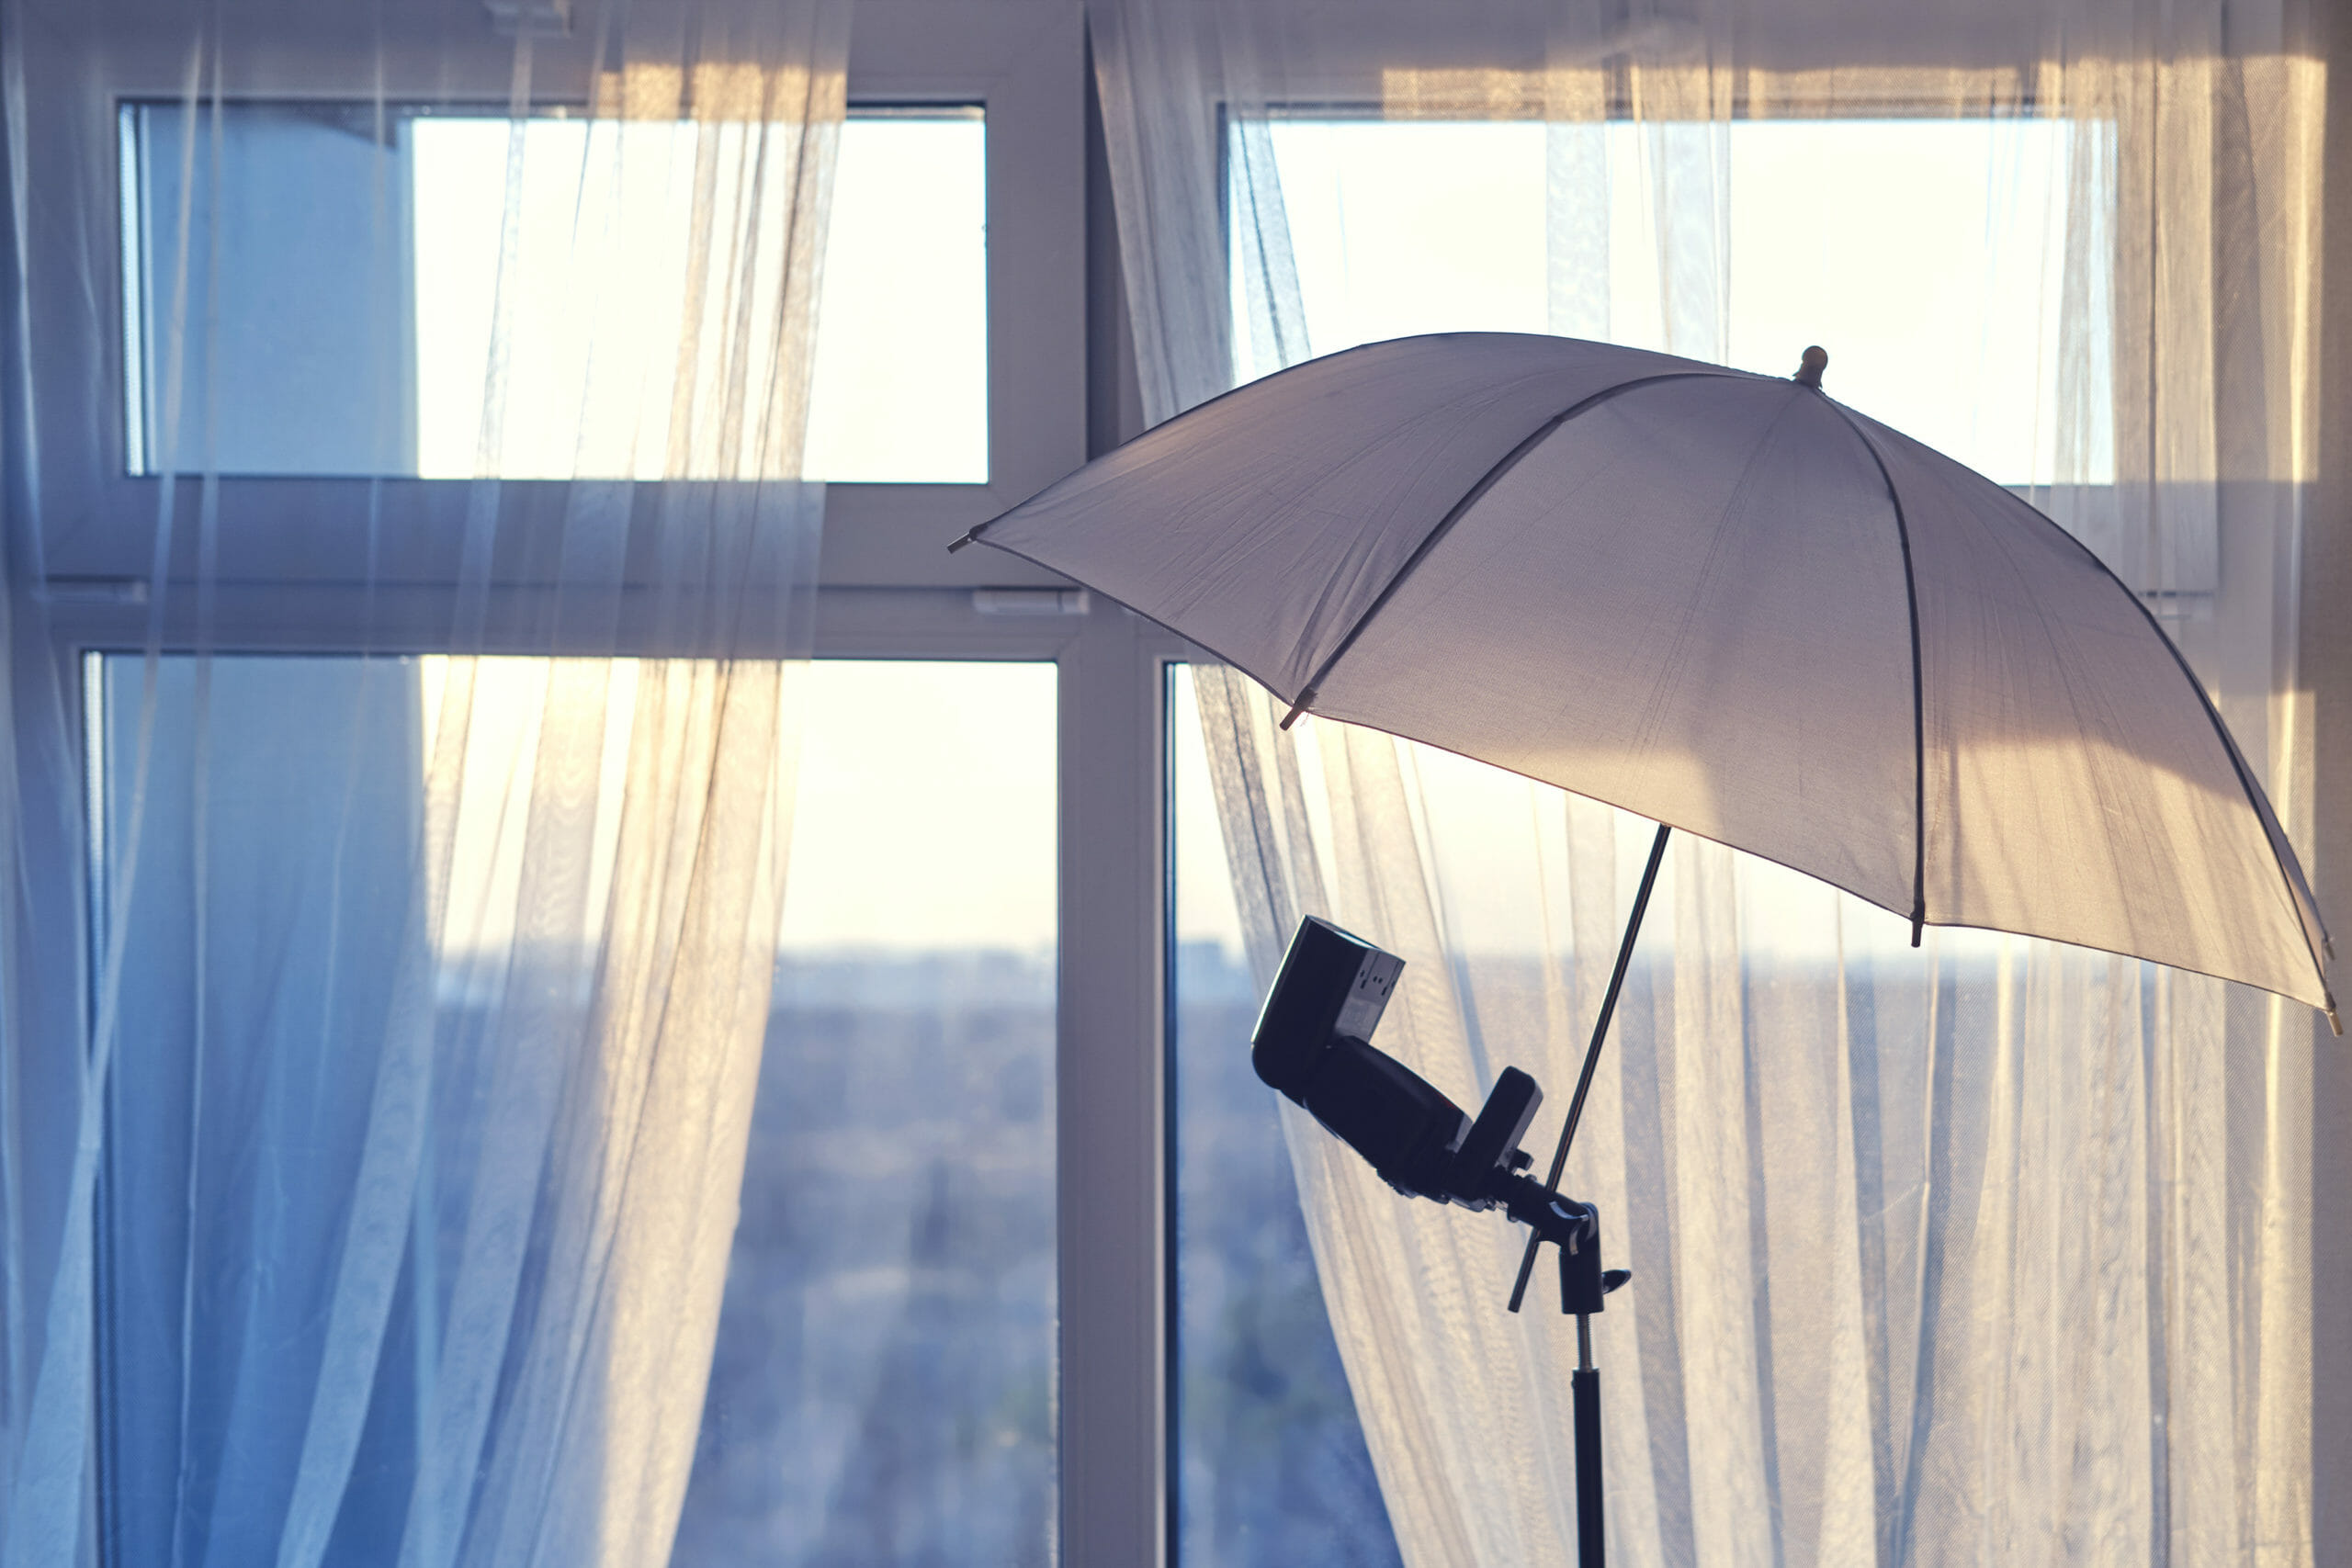 Real Estate Photography - Flash with Umbrella